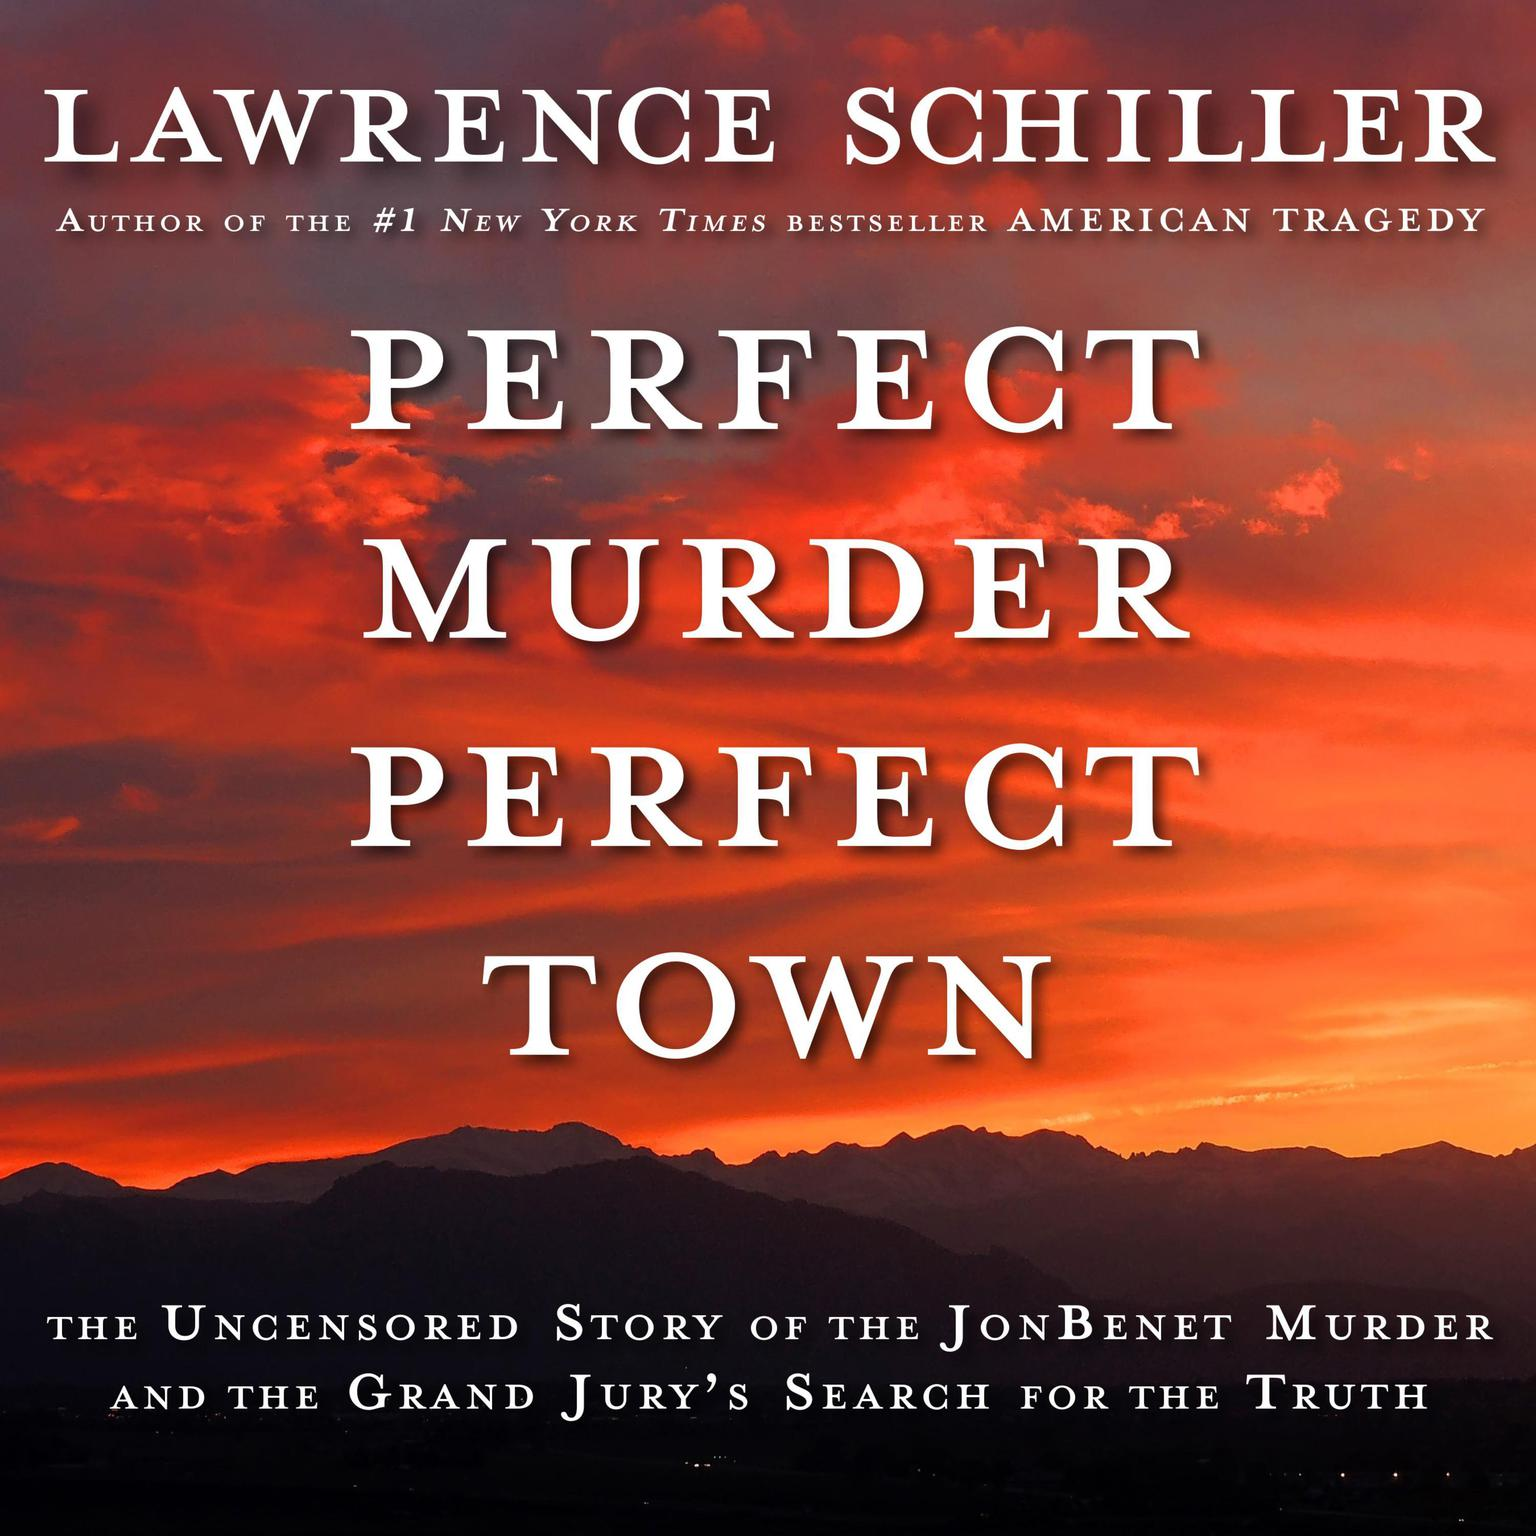 Printable Perfect Murder, Perfect Town: The Uncensored Story of the JonBenét Murder and the Grand Jury's Search for the Truth Audiobook Cover Art